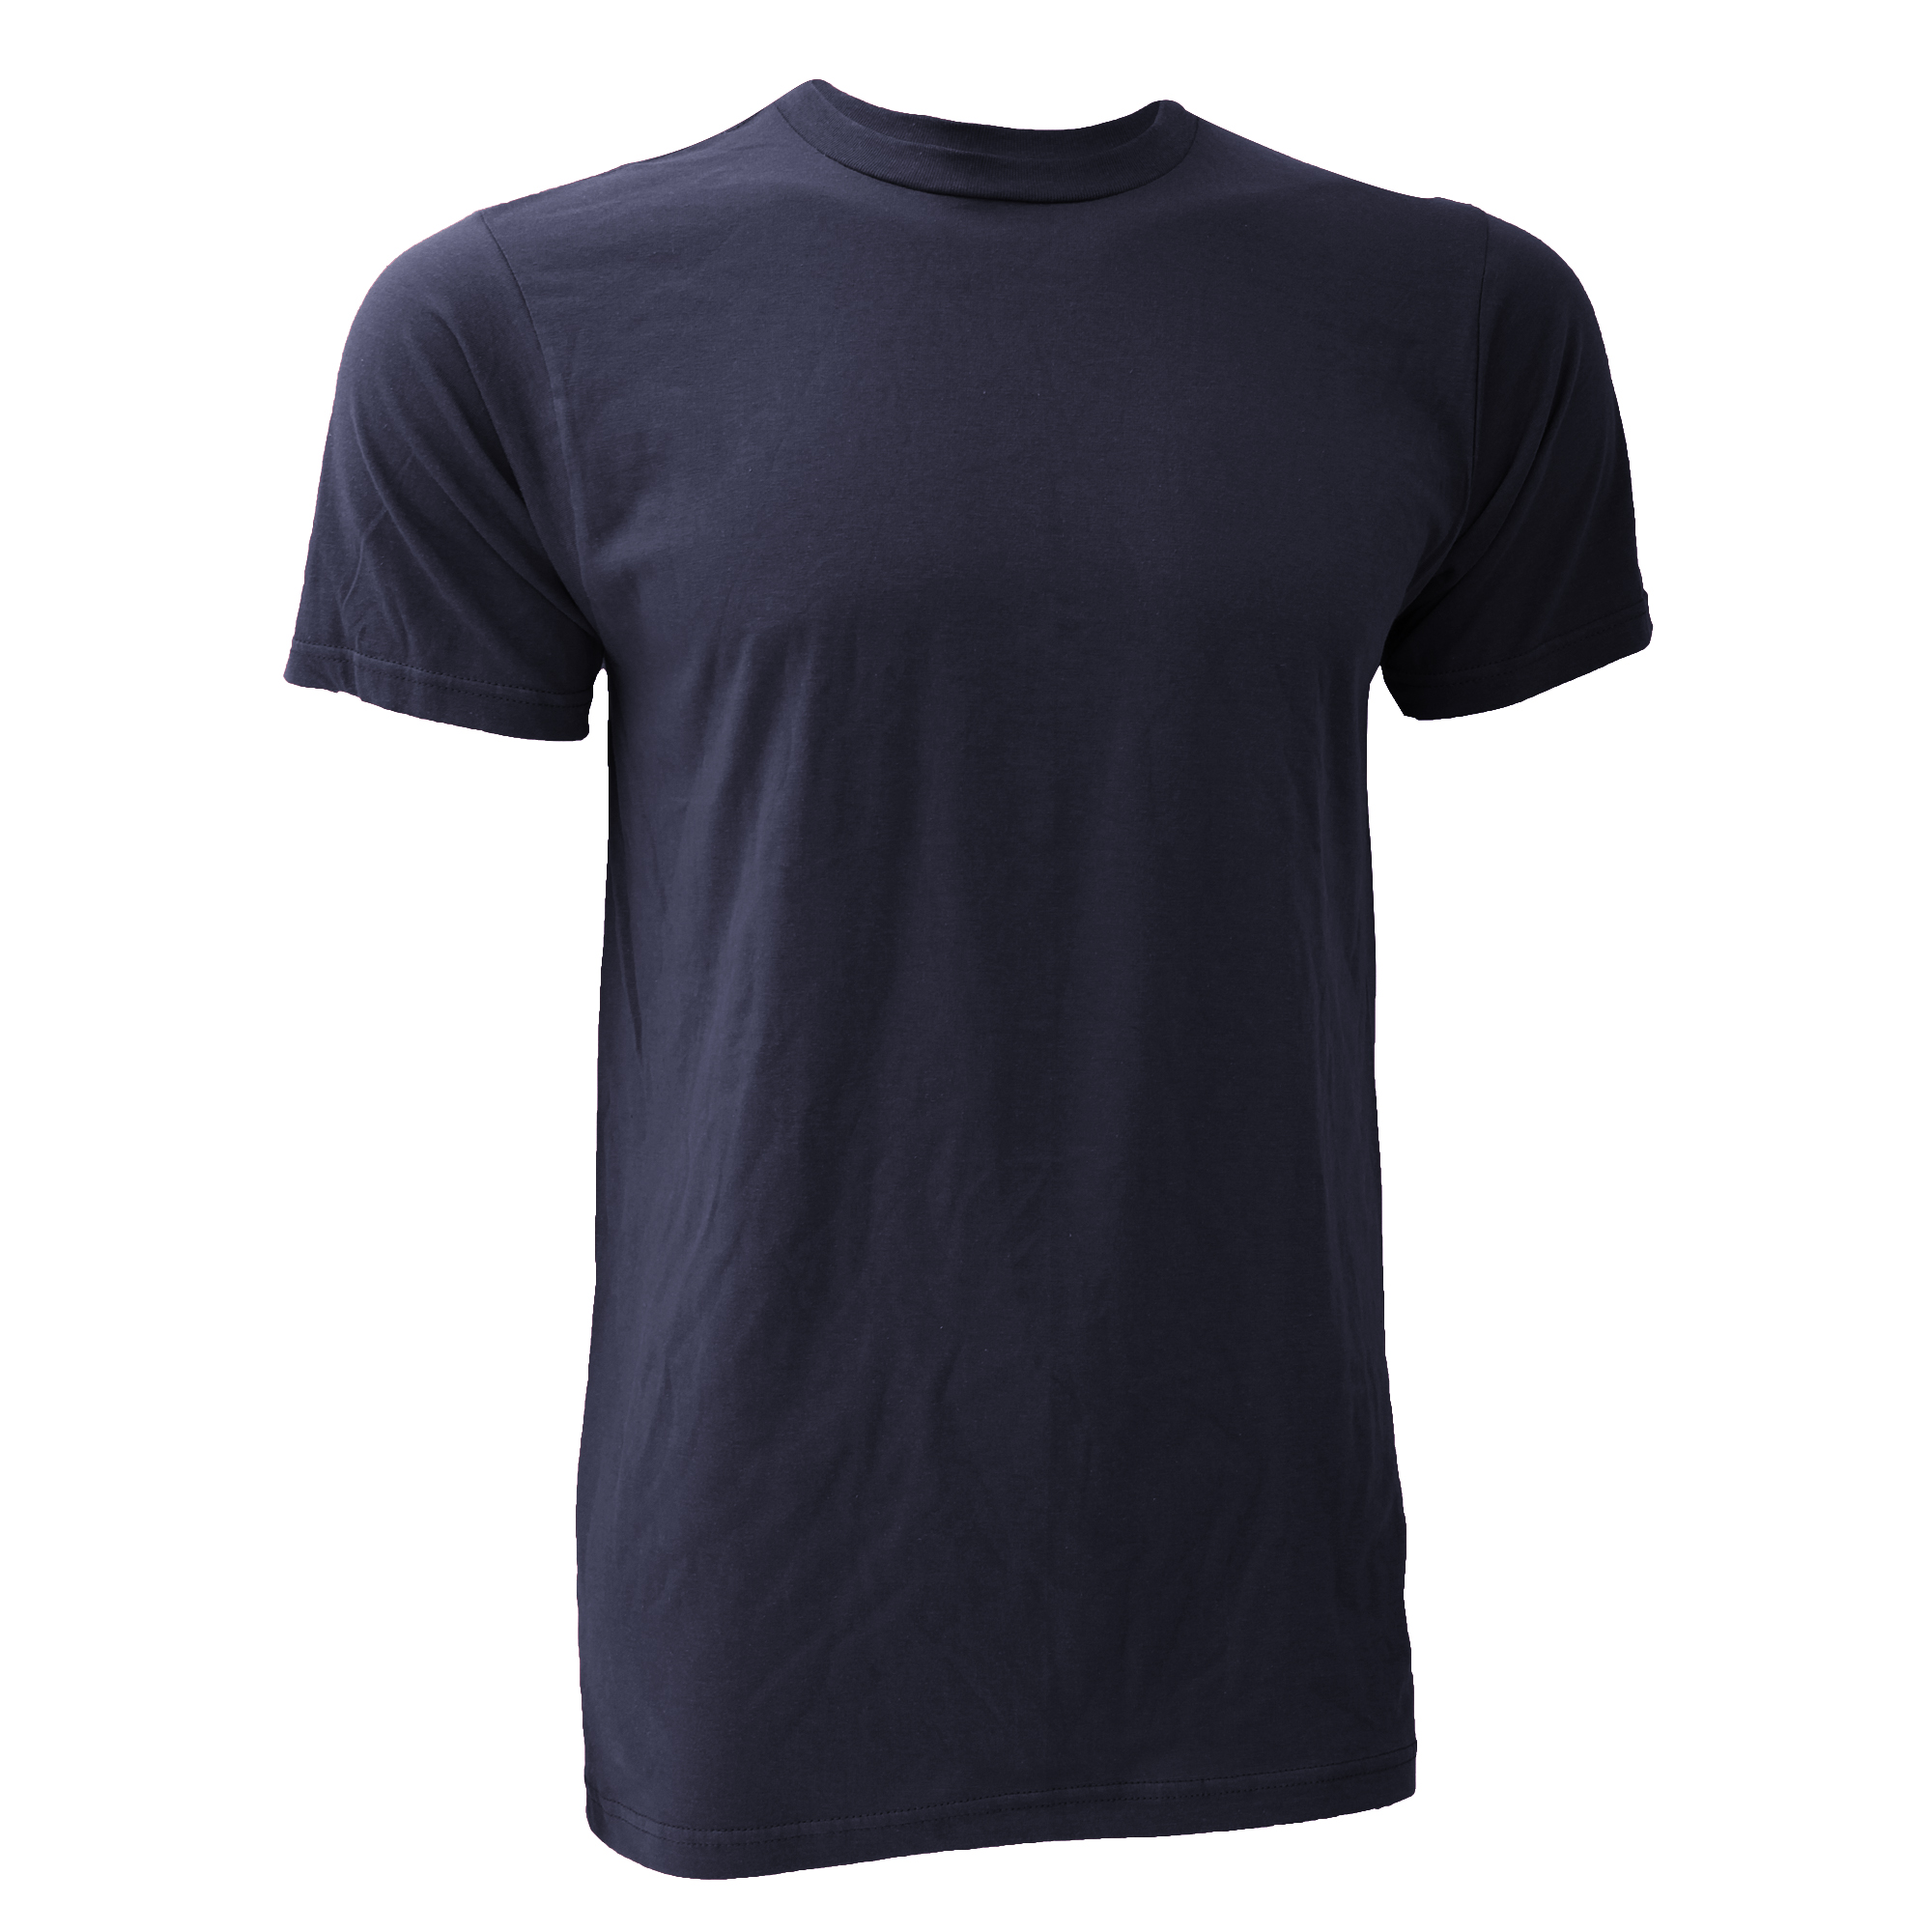 Anvil organic fashion tee t shirt ebay for Where are anvil shirts made